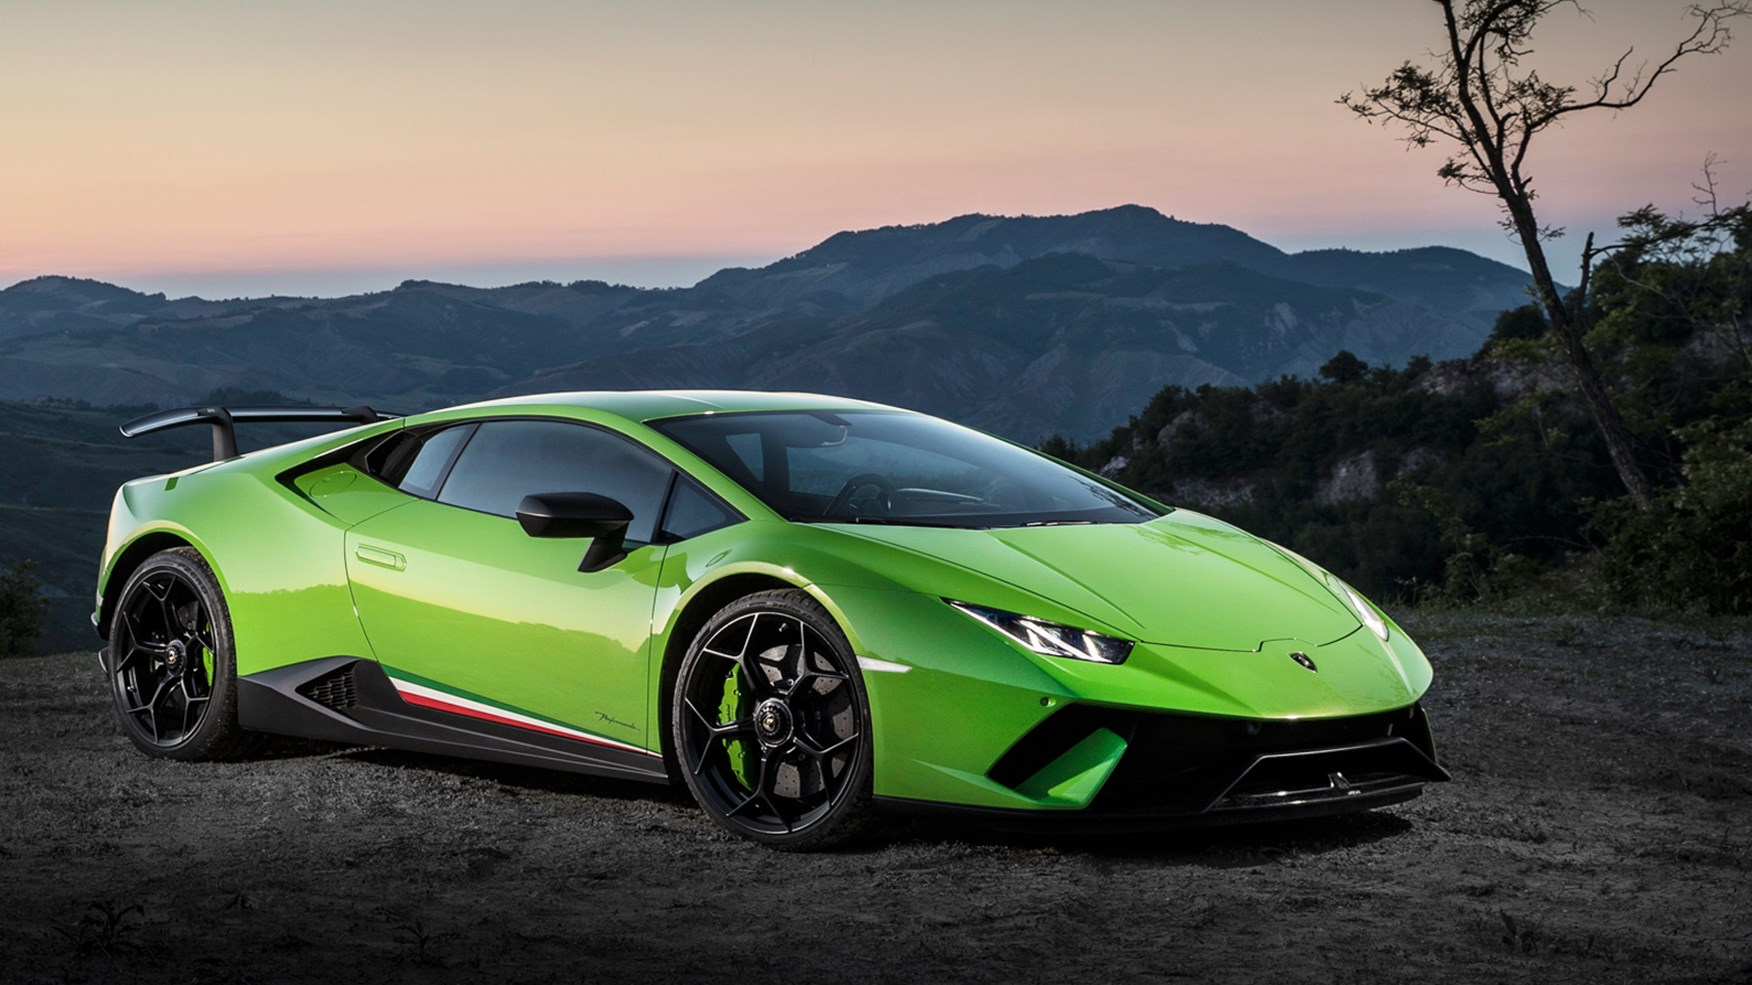 Lamborghini Huracan Lease >> Lamborghini Huracan Performante (2017) review | CAR Magazine